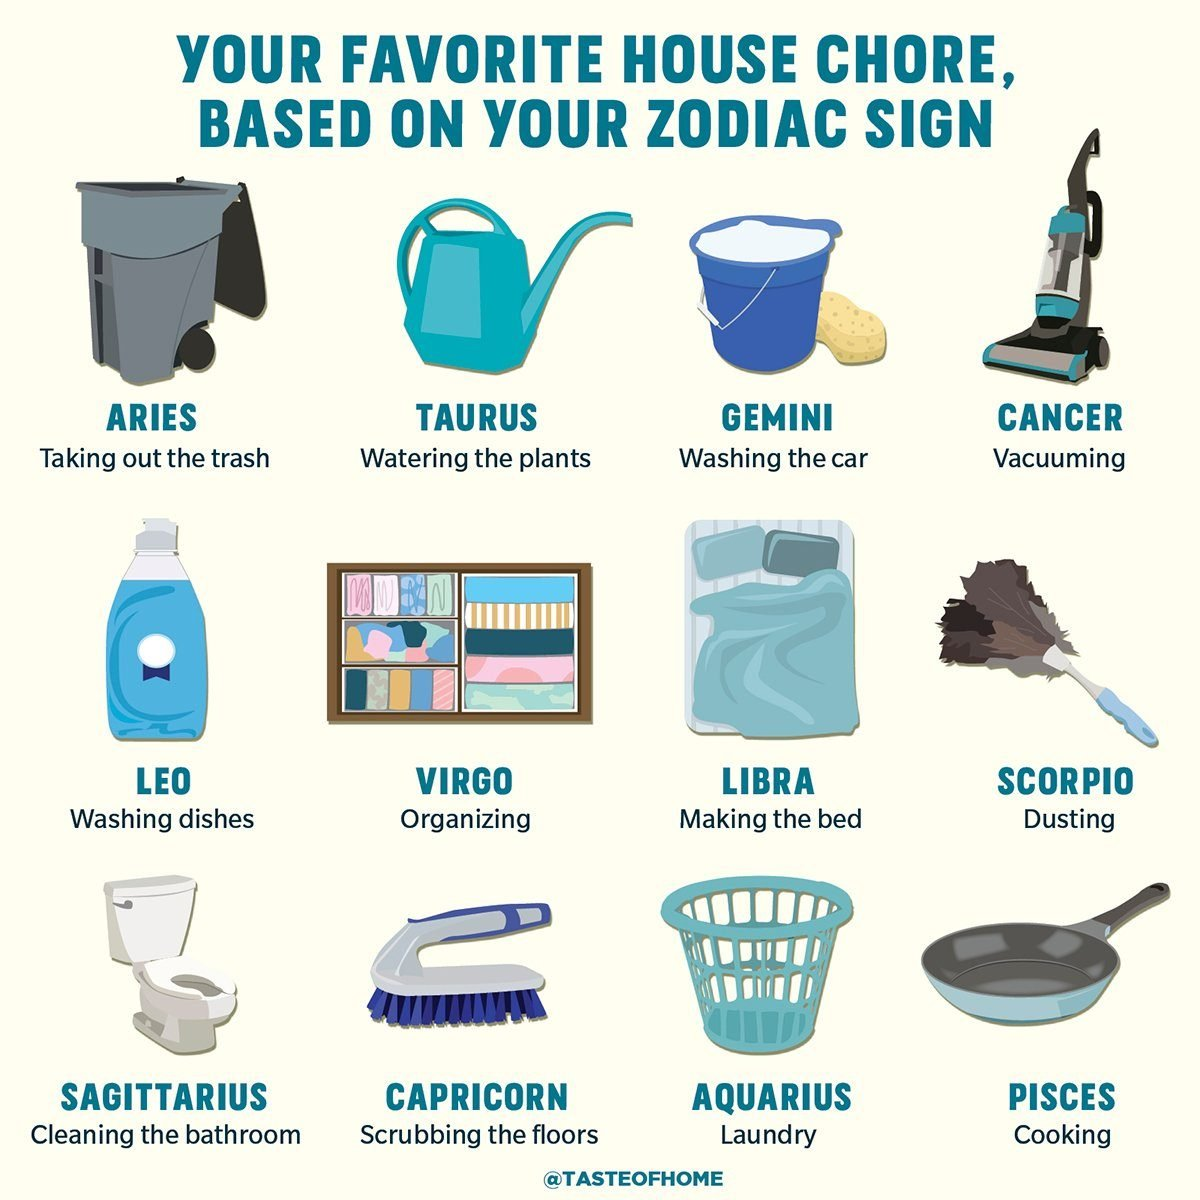 Your Favorite House Chore Based on Your Zodiac Sign_1200x1200